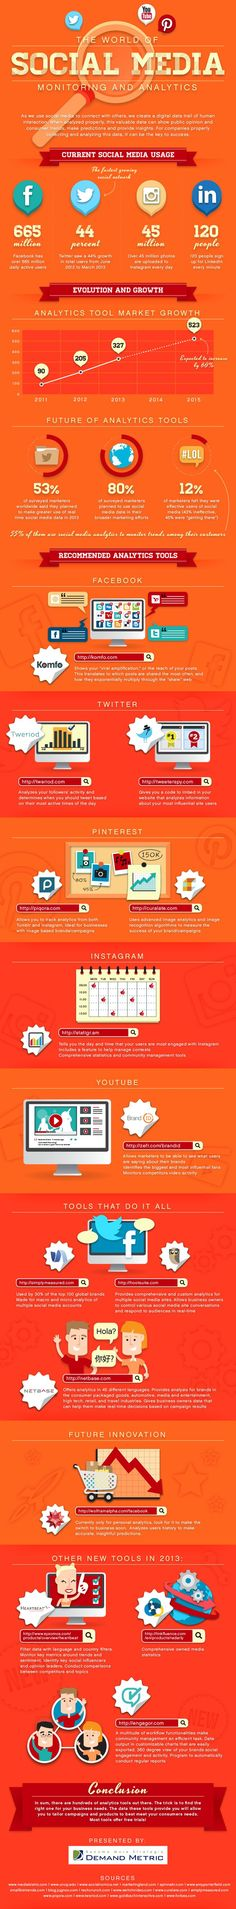 The World of Social Media monitoring and analytics [Infographic]